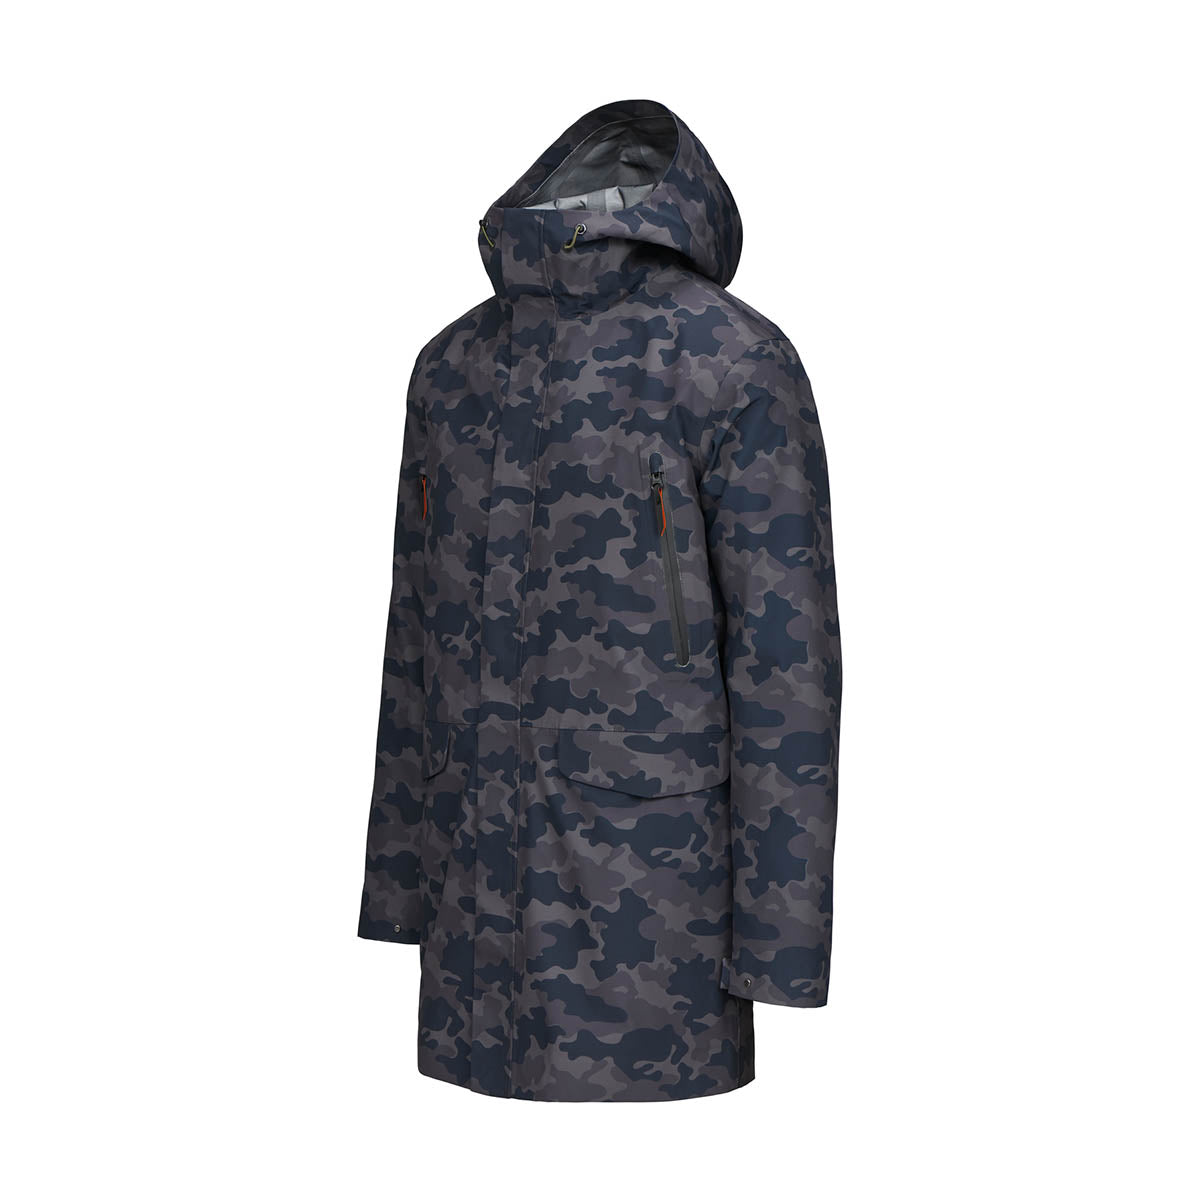 Zürich II Parka - background::white,variant::Night Camo